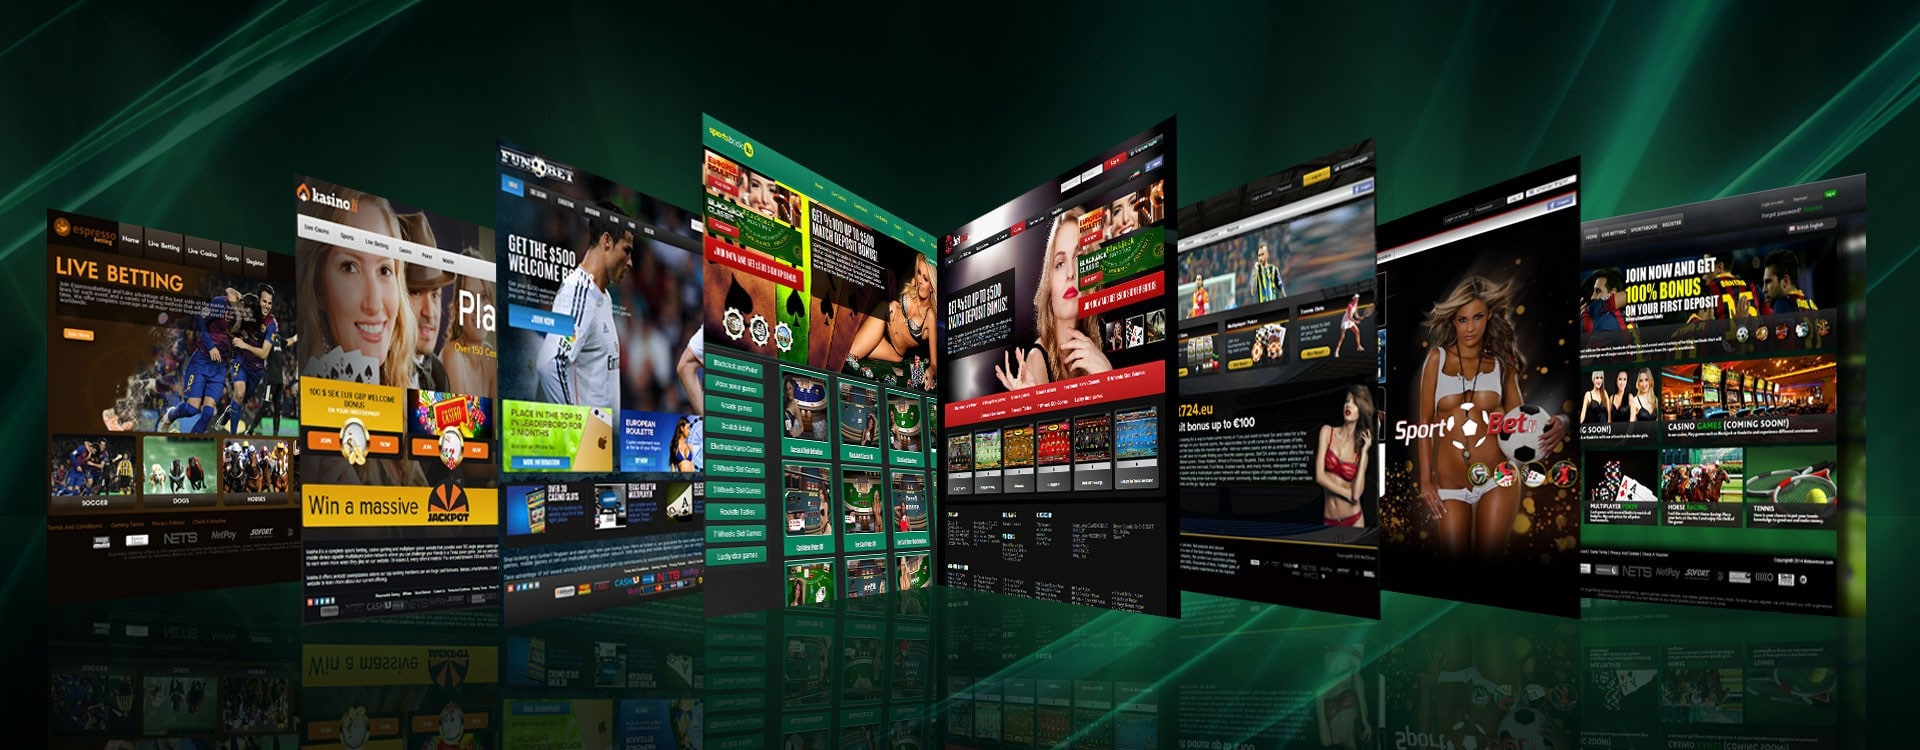 Online sportsbook and casino betting elbow river casino calgary alberta